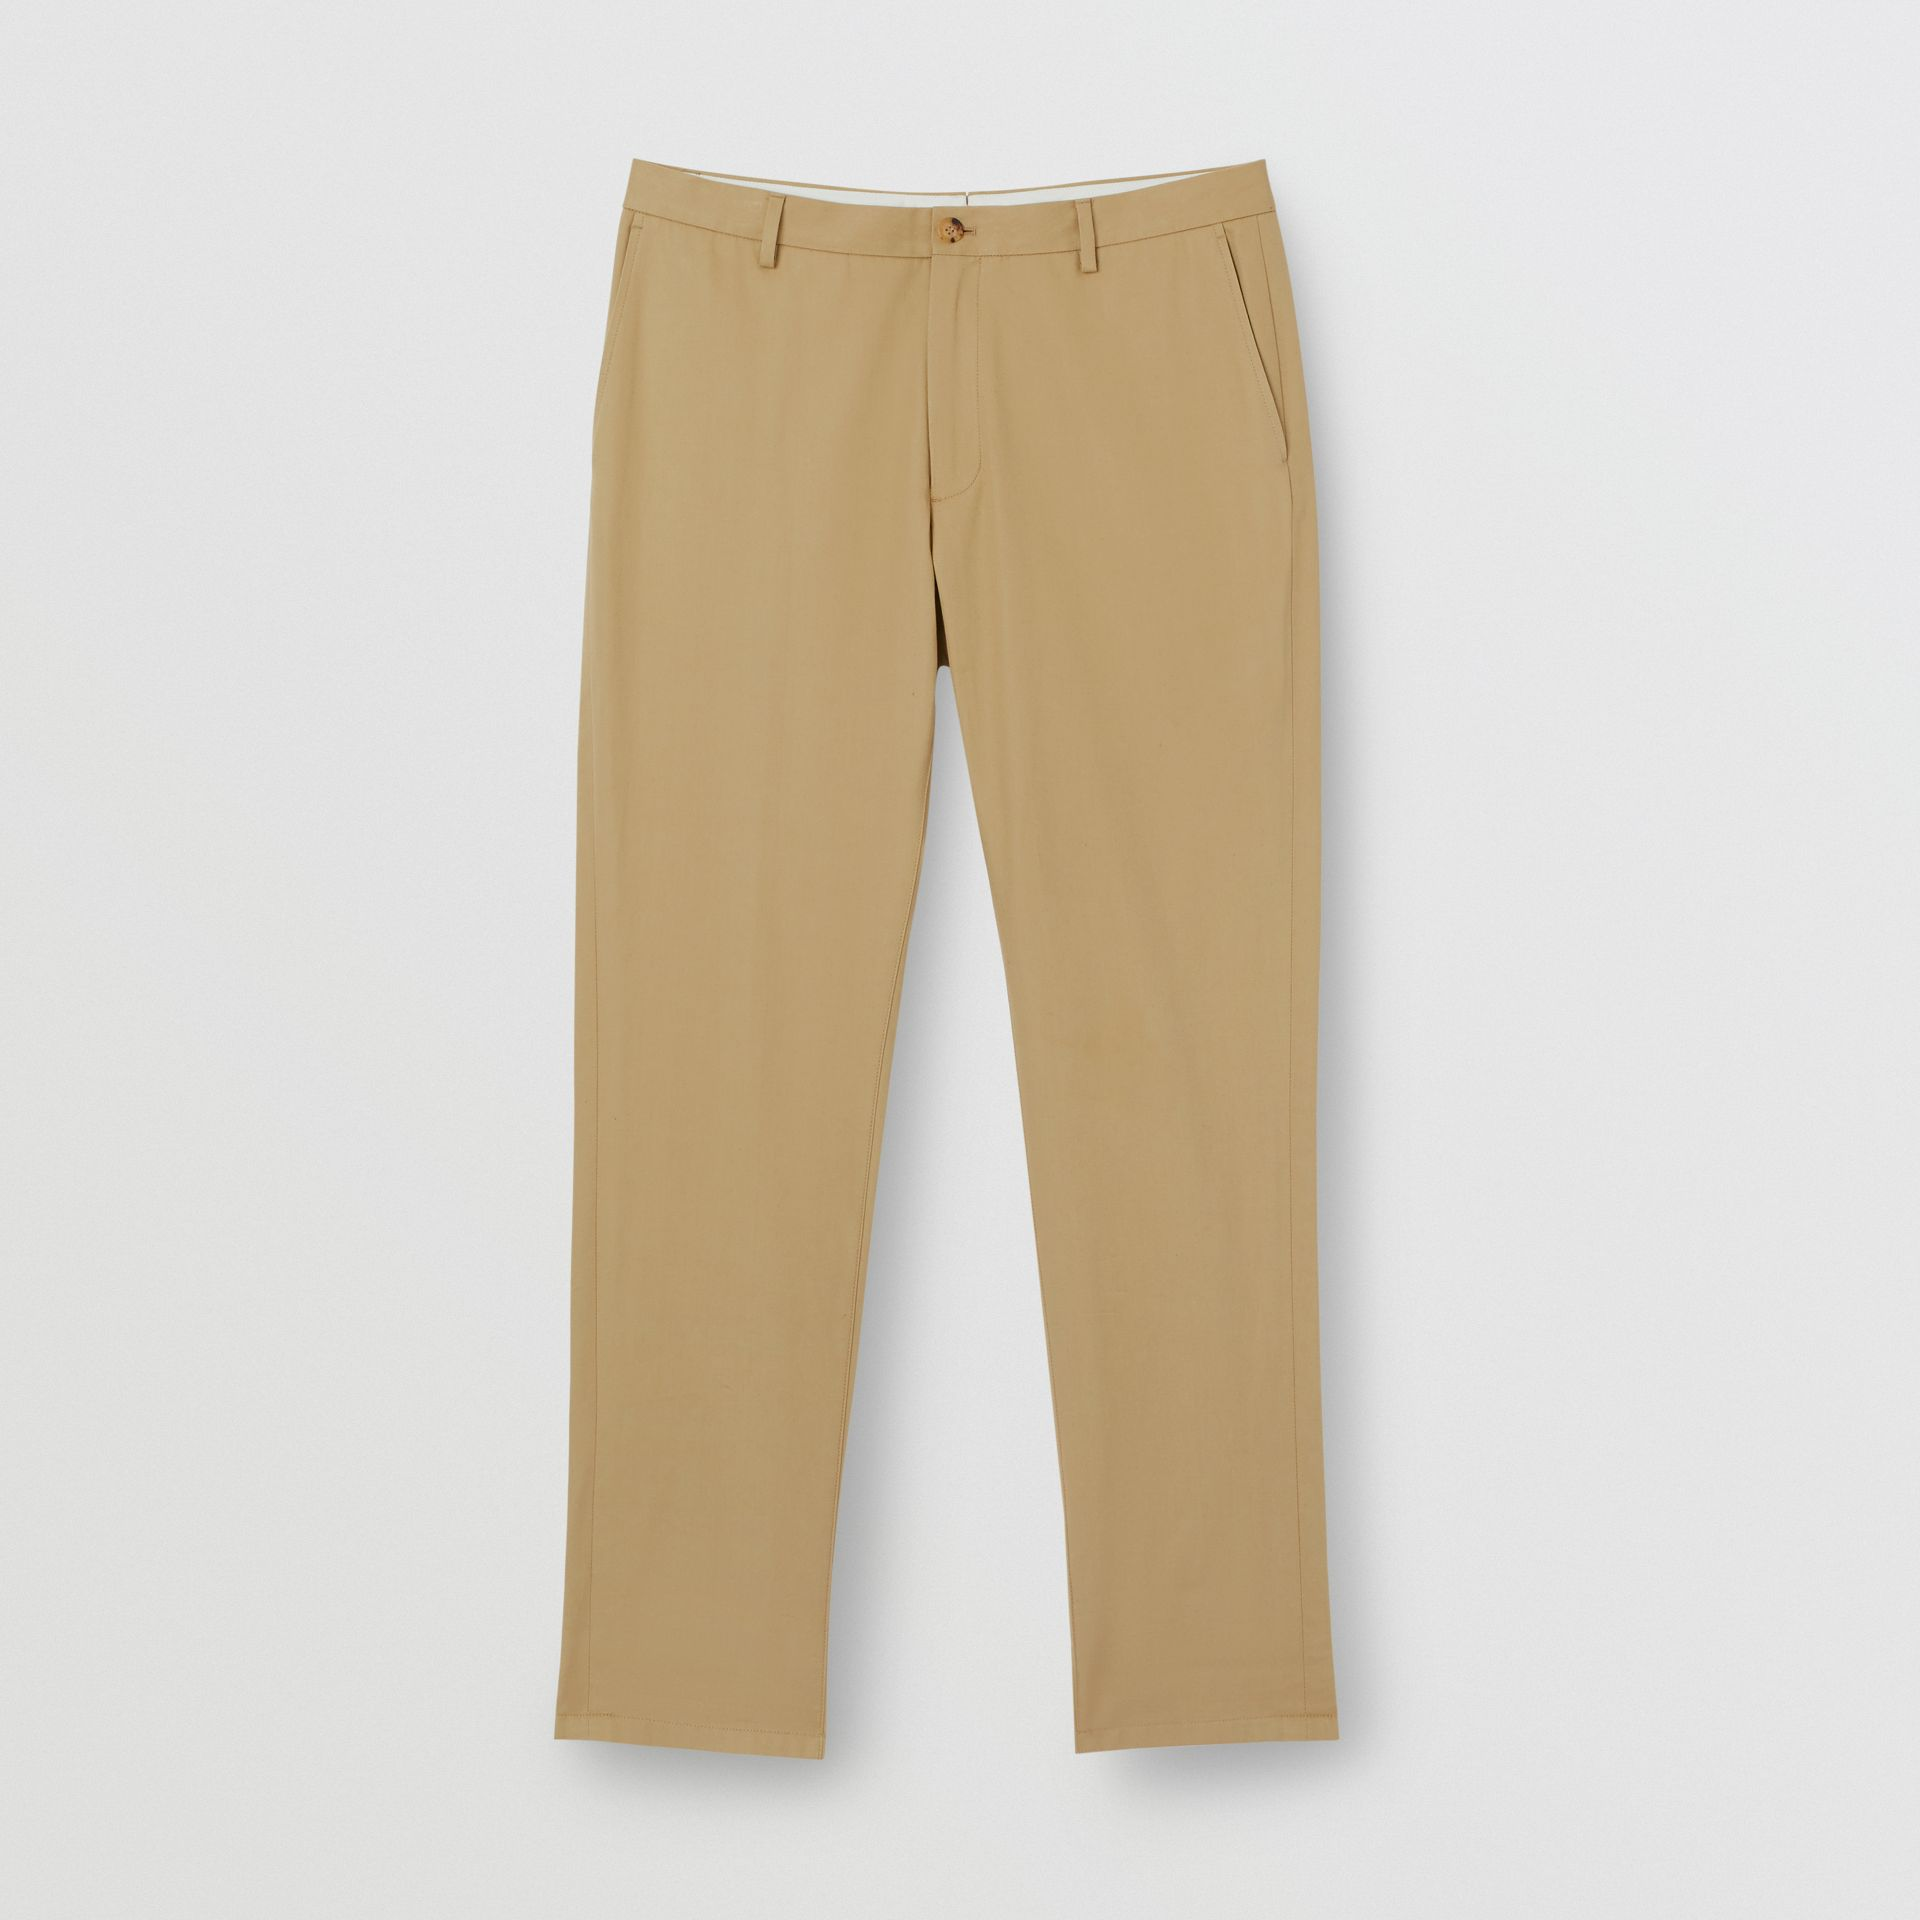 Slim Fit Cotton Chinos in Honey - Men | Burberry - gallery image 3